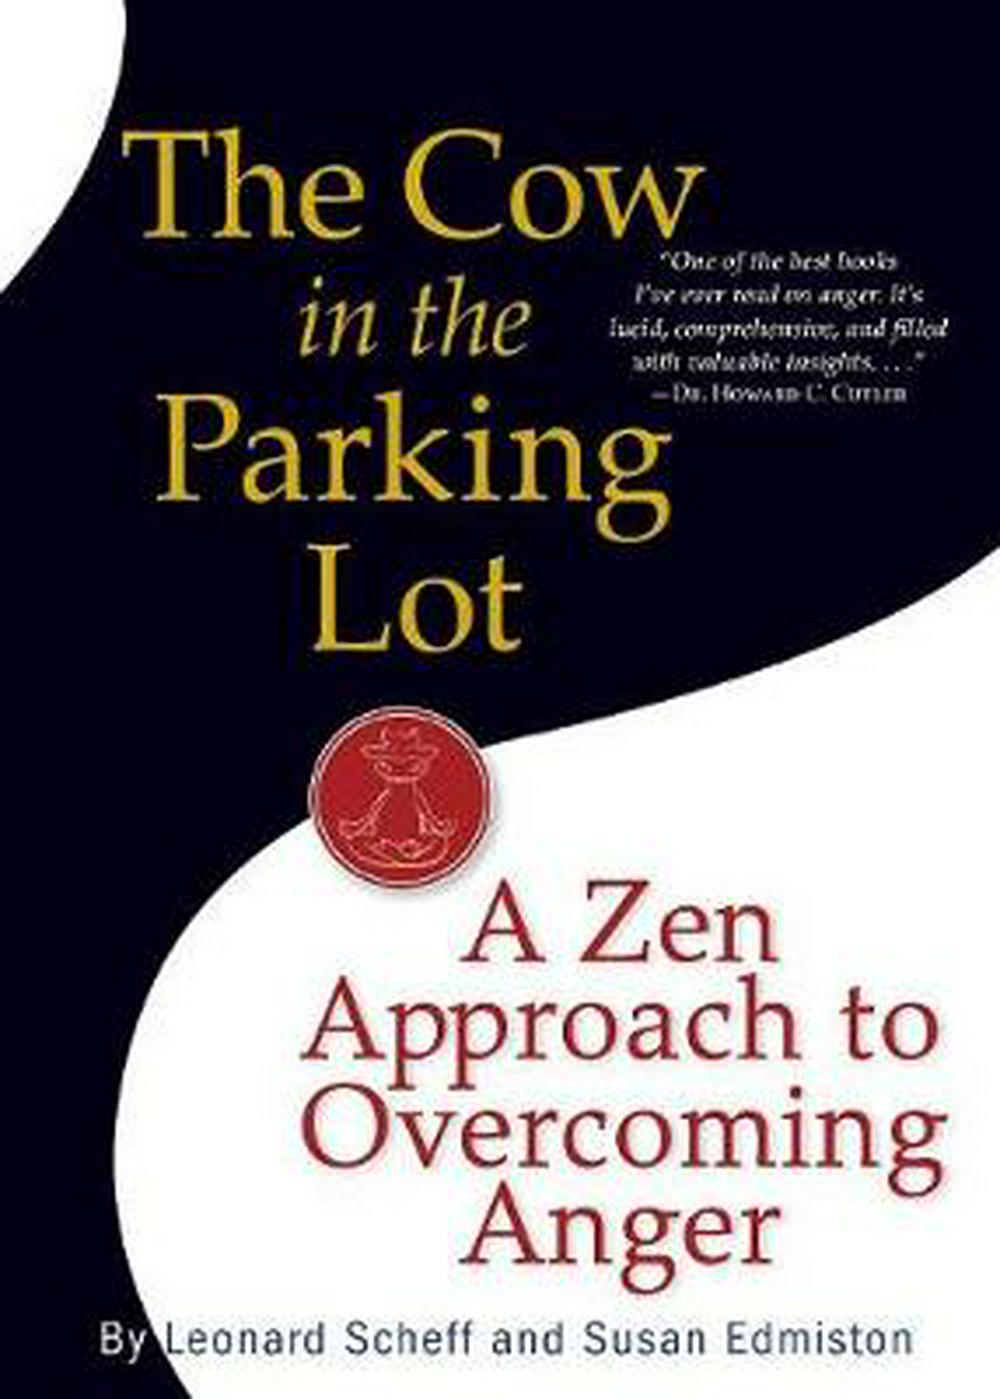 The Cow in the Parking Lot by Leonard Scheff, ISBN: 9780761158158